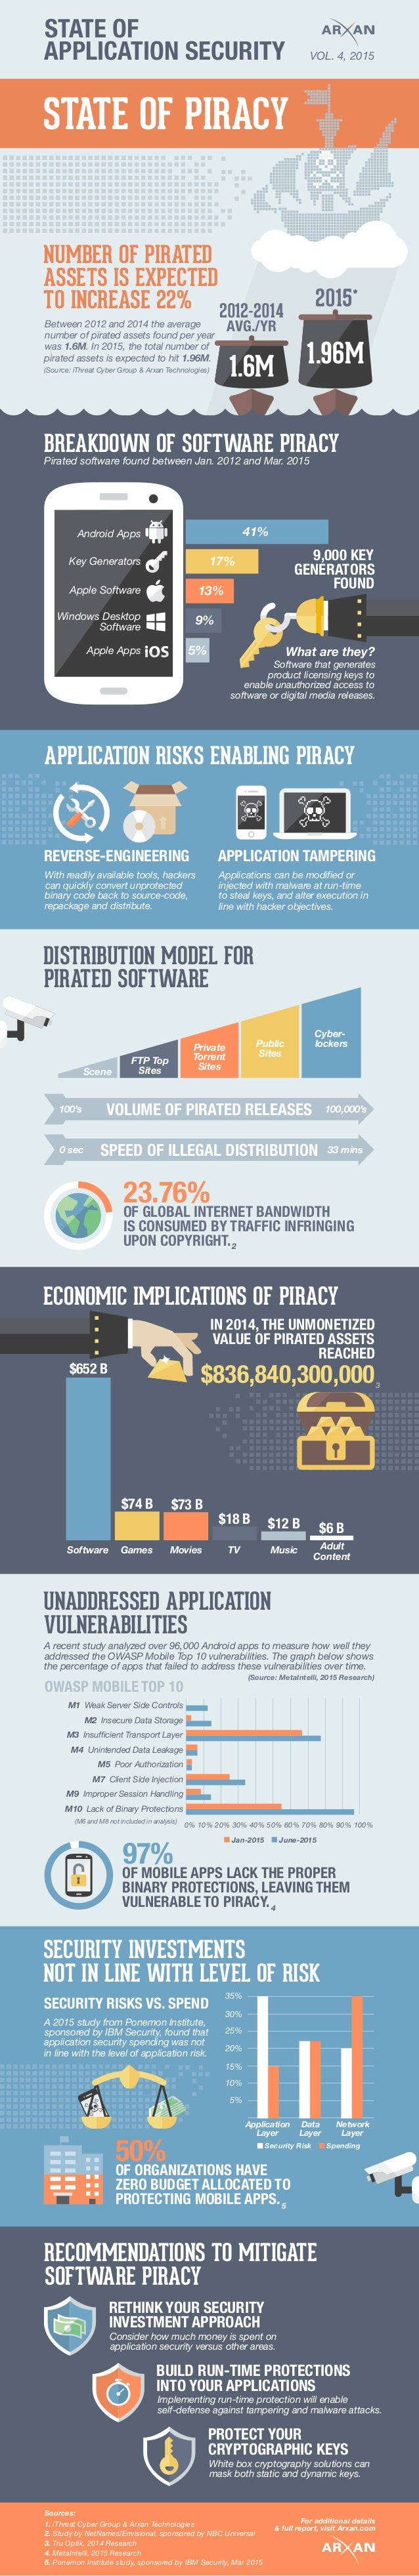 STATE OF APPLICATION SECURITY VOL. 4, 2015 STATE OF PIRACY 1.6M 1.96M ASSETS IS EXPECTED NUMBER OF PIRATED Pirated softwar...